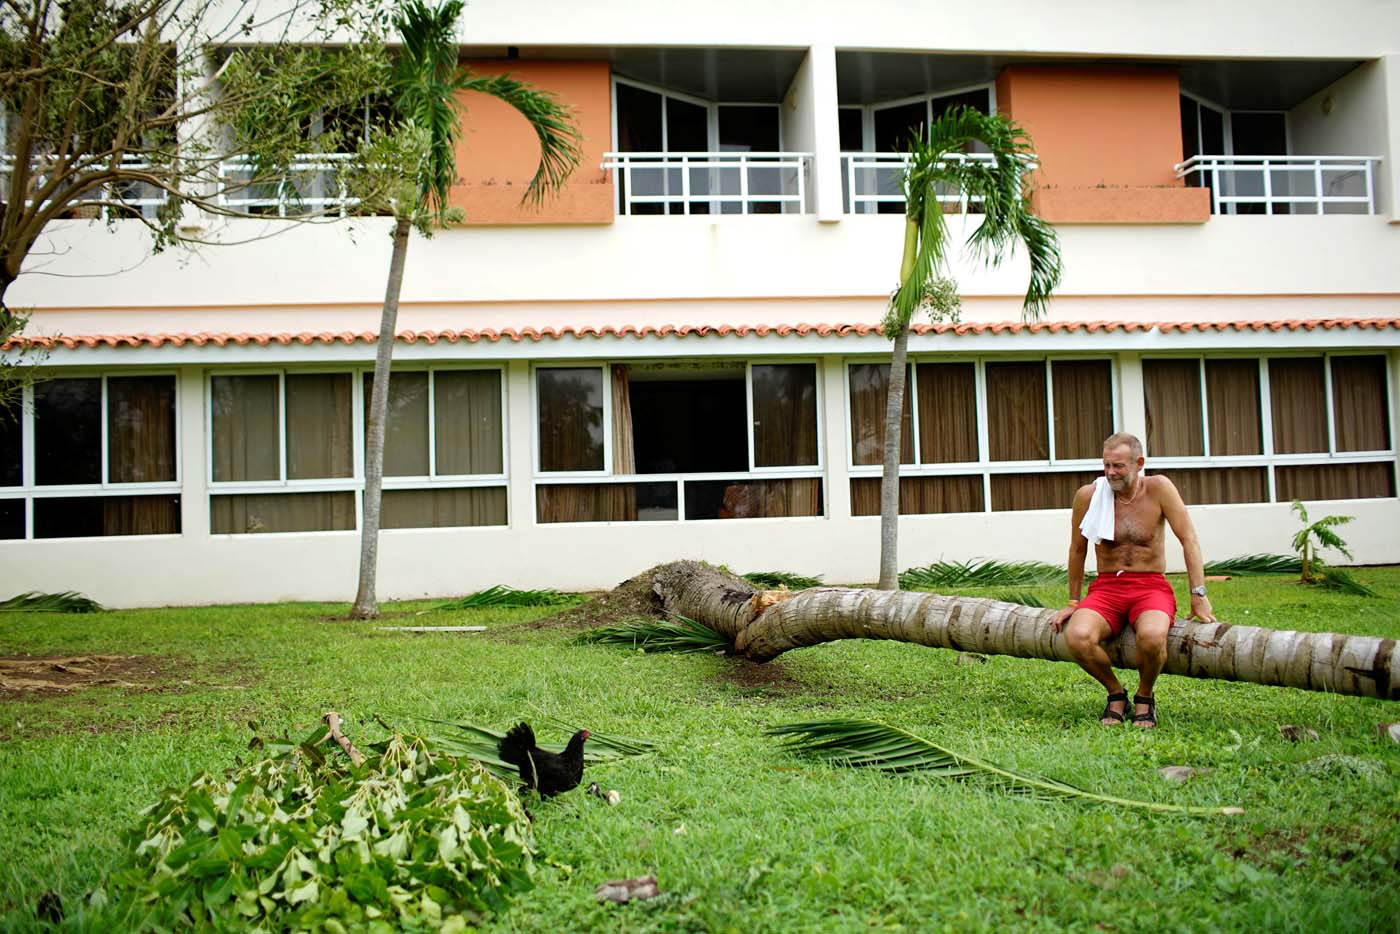 British tourist Terry Gill watches a chicken and its chicks as he rests on a broken palm tree a day after the passage of Hurricane Irma in Varadero, Cuba, September 10, 2017. REUTERS/Alexandre Meneghini